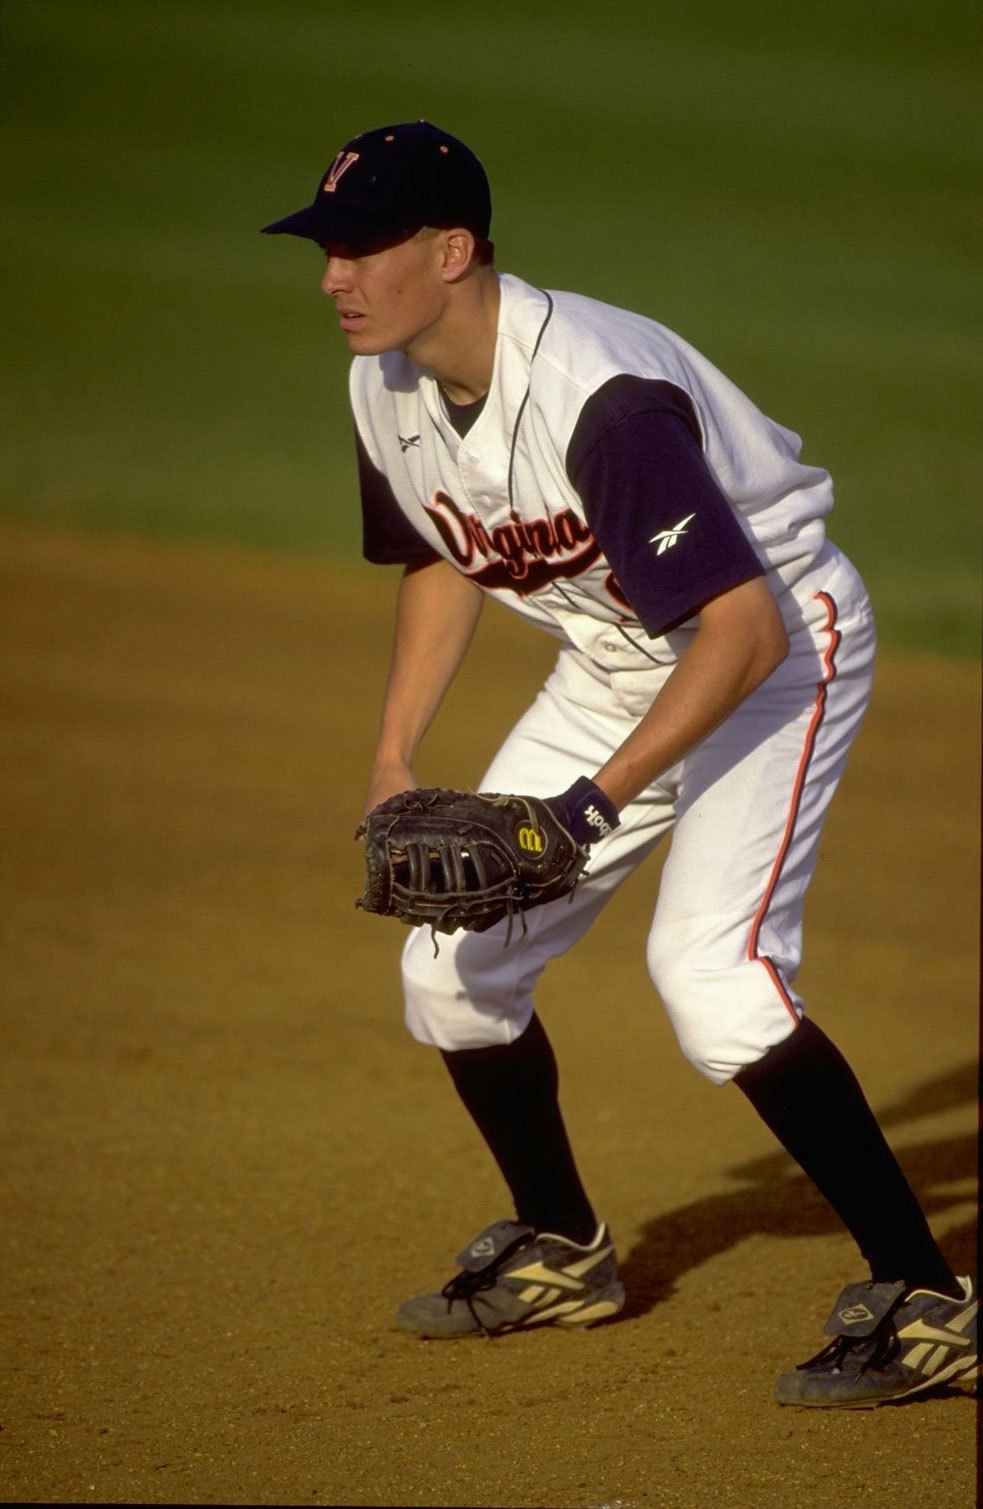 Wyant is the only UVA player to ever hit for the cycle. (Photo courtesy of UVA Athletics)